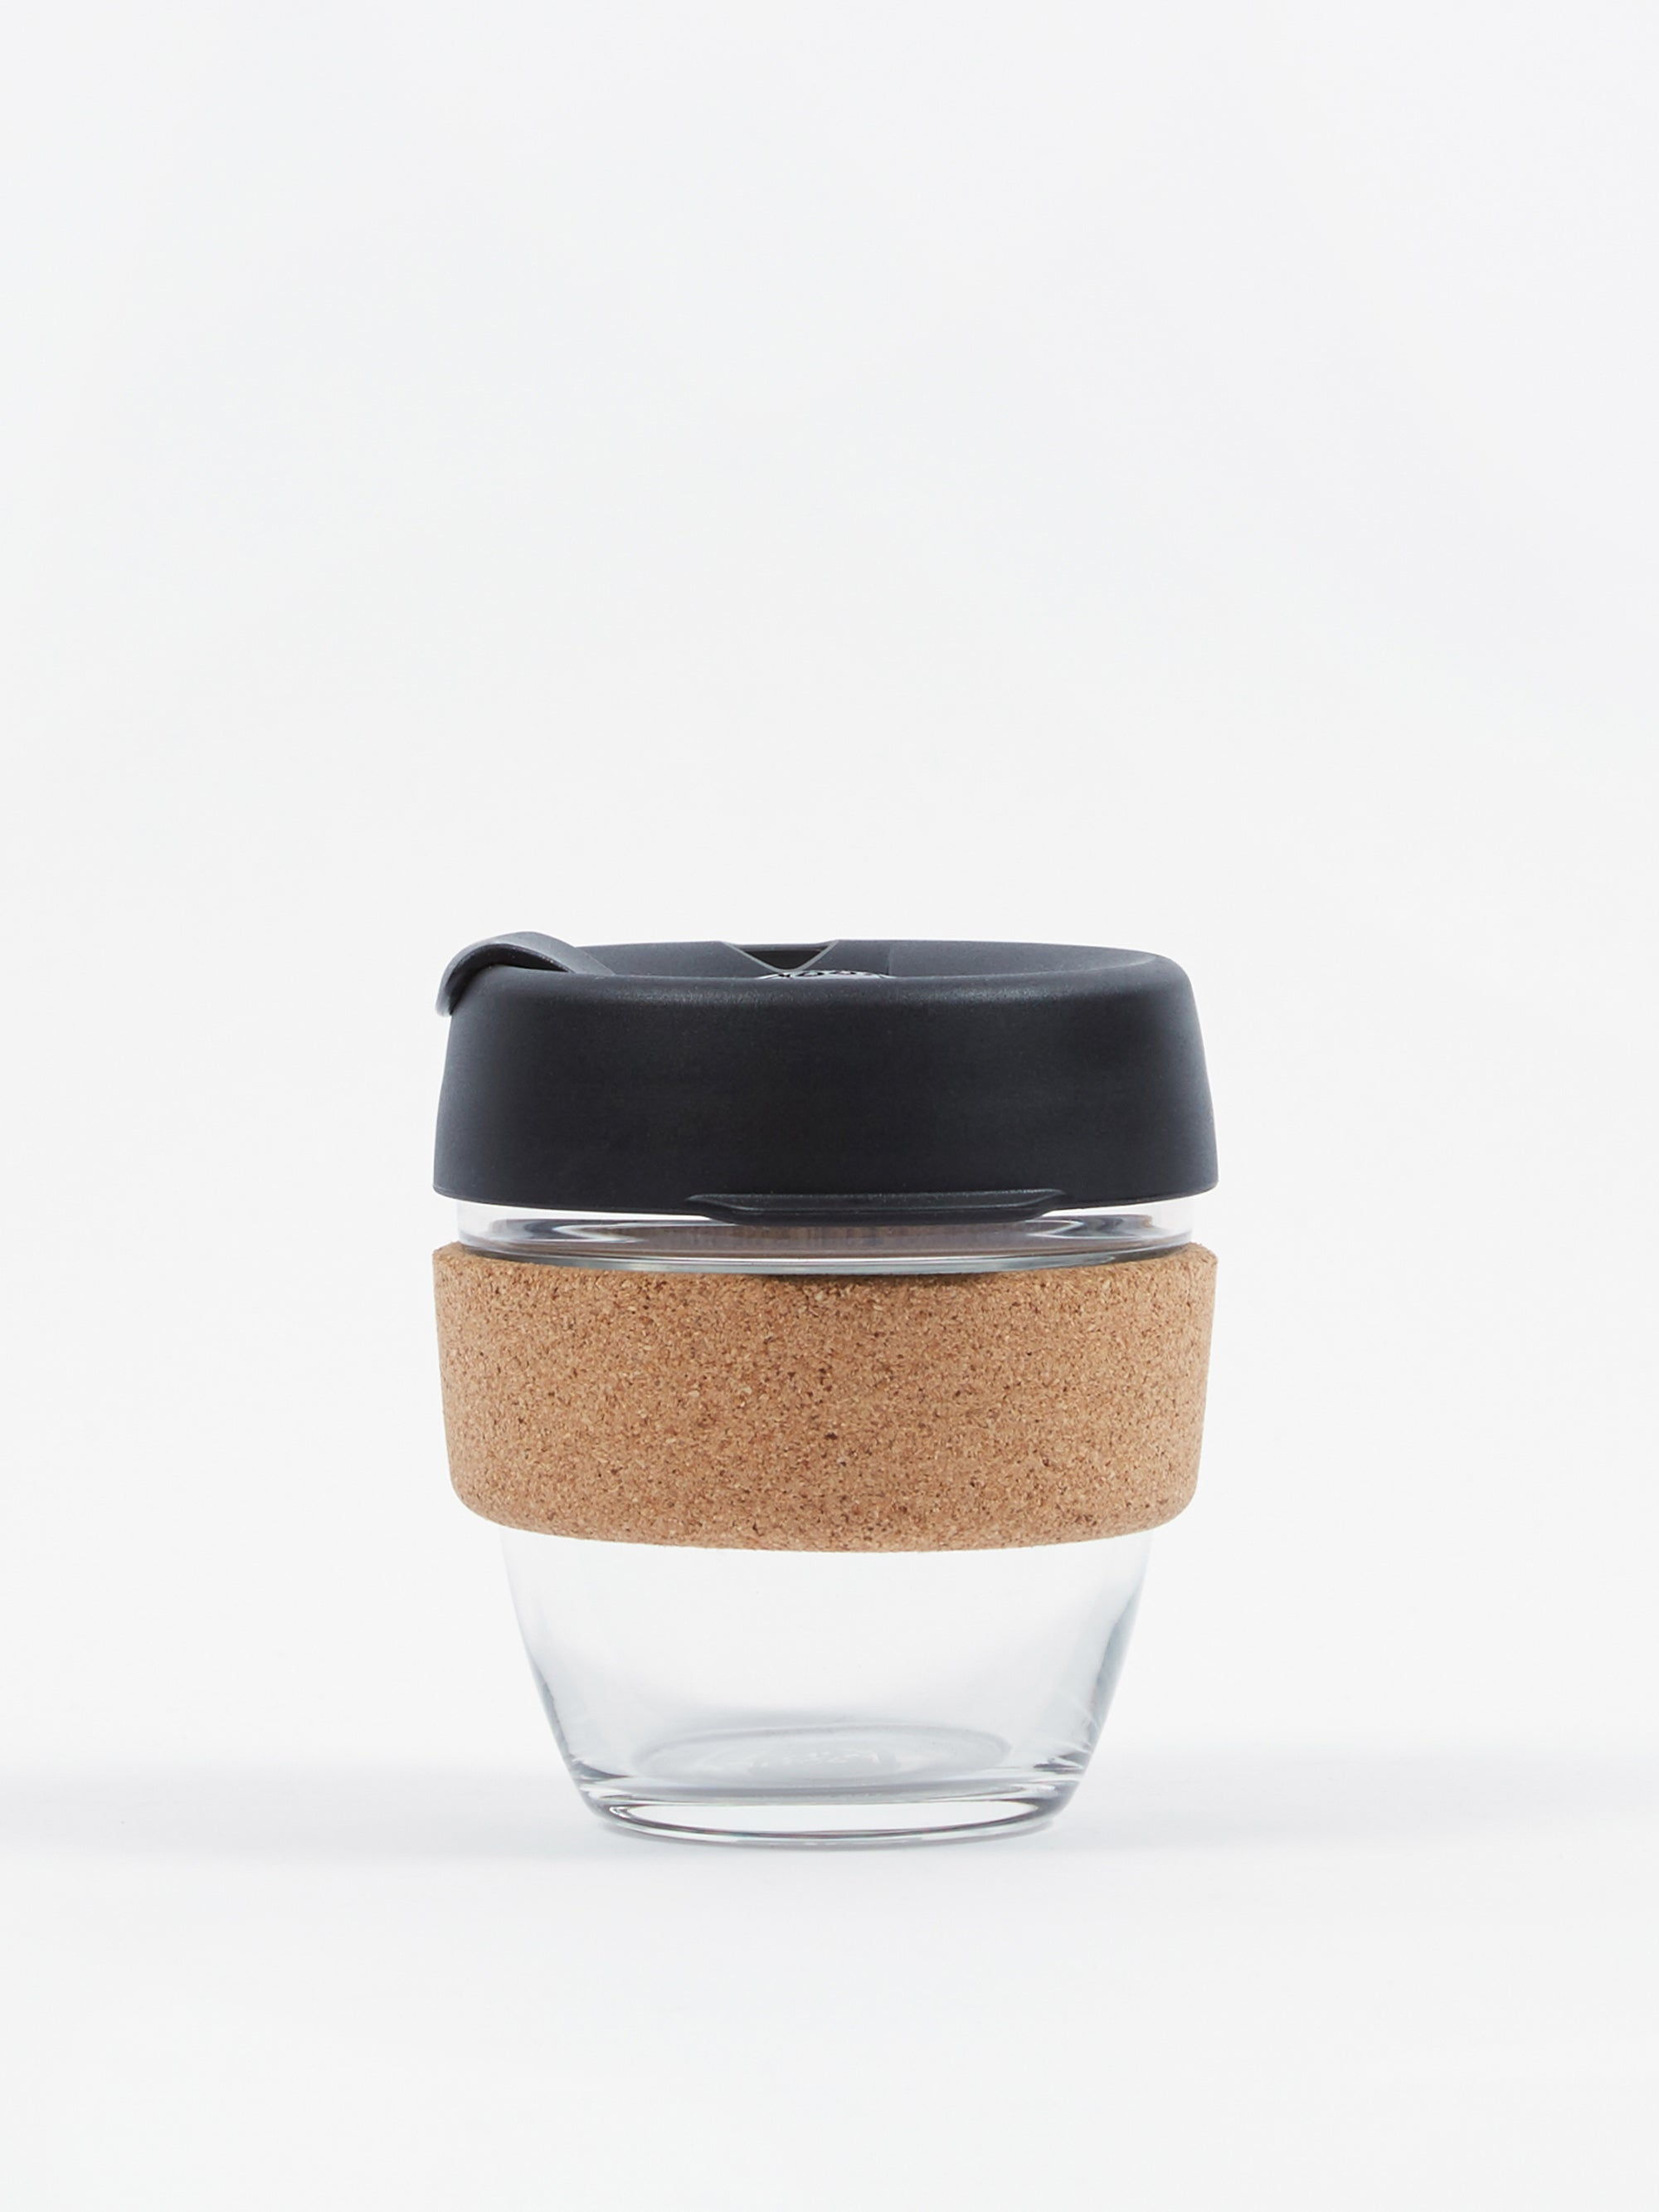 KeepCup Cork Brew Reusable 8oz Glass Coffee Cup Espresso